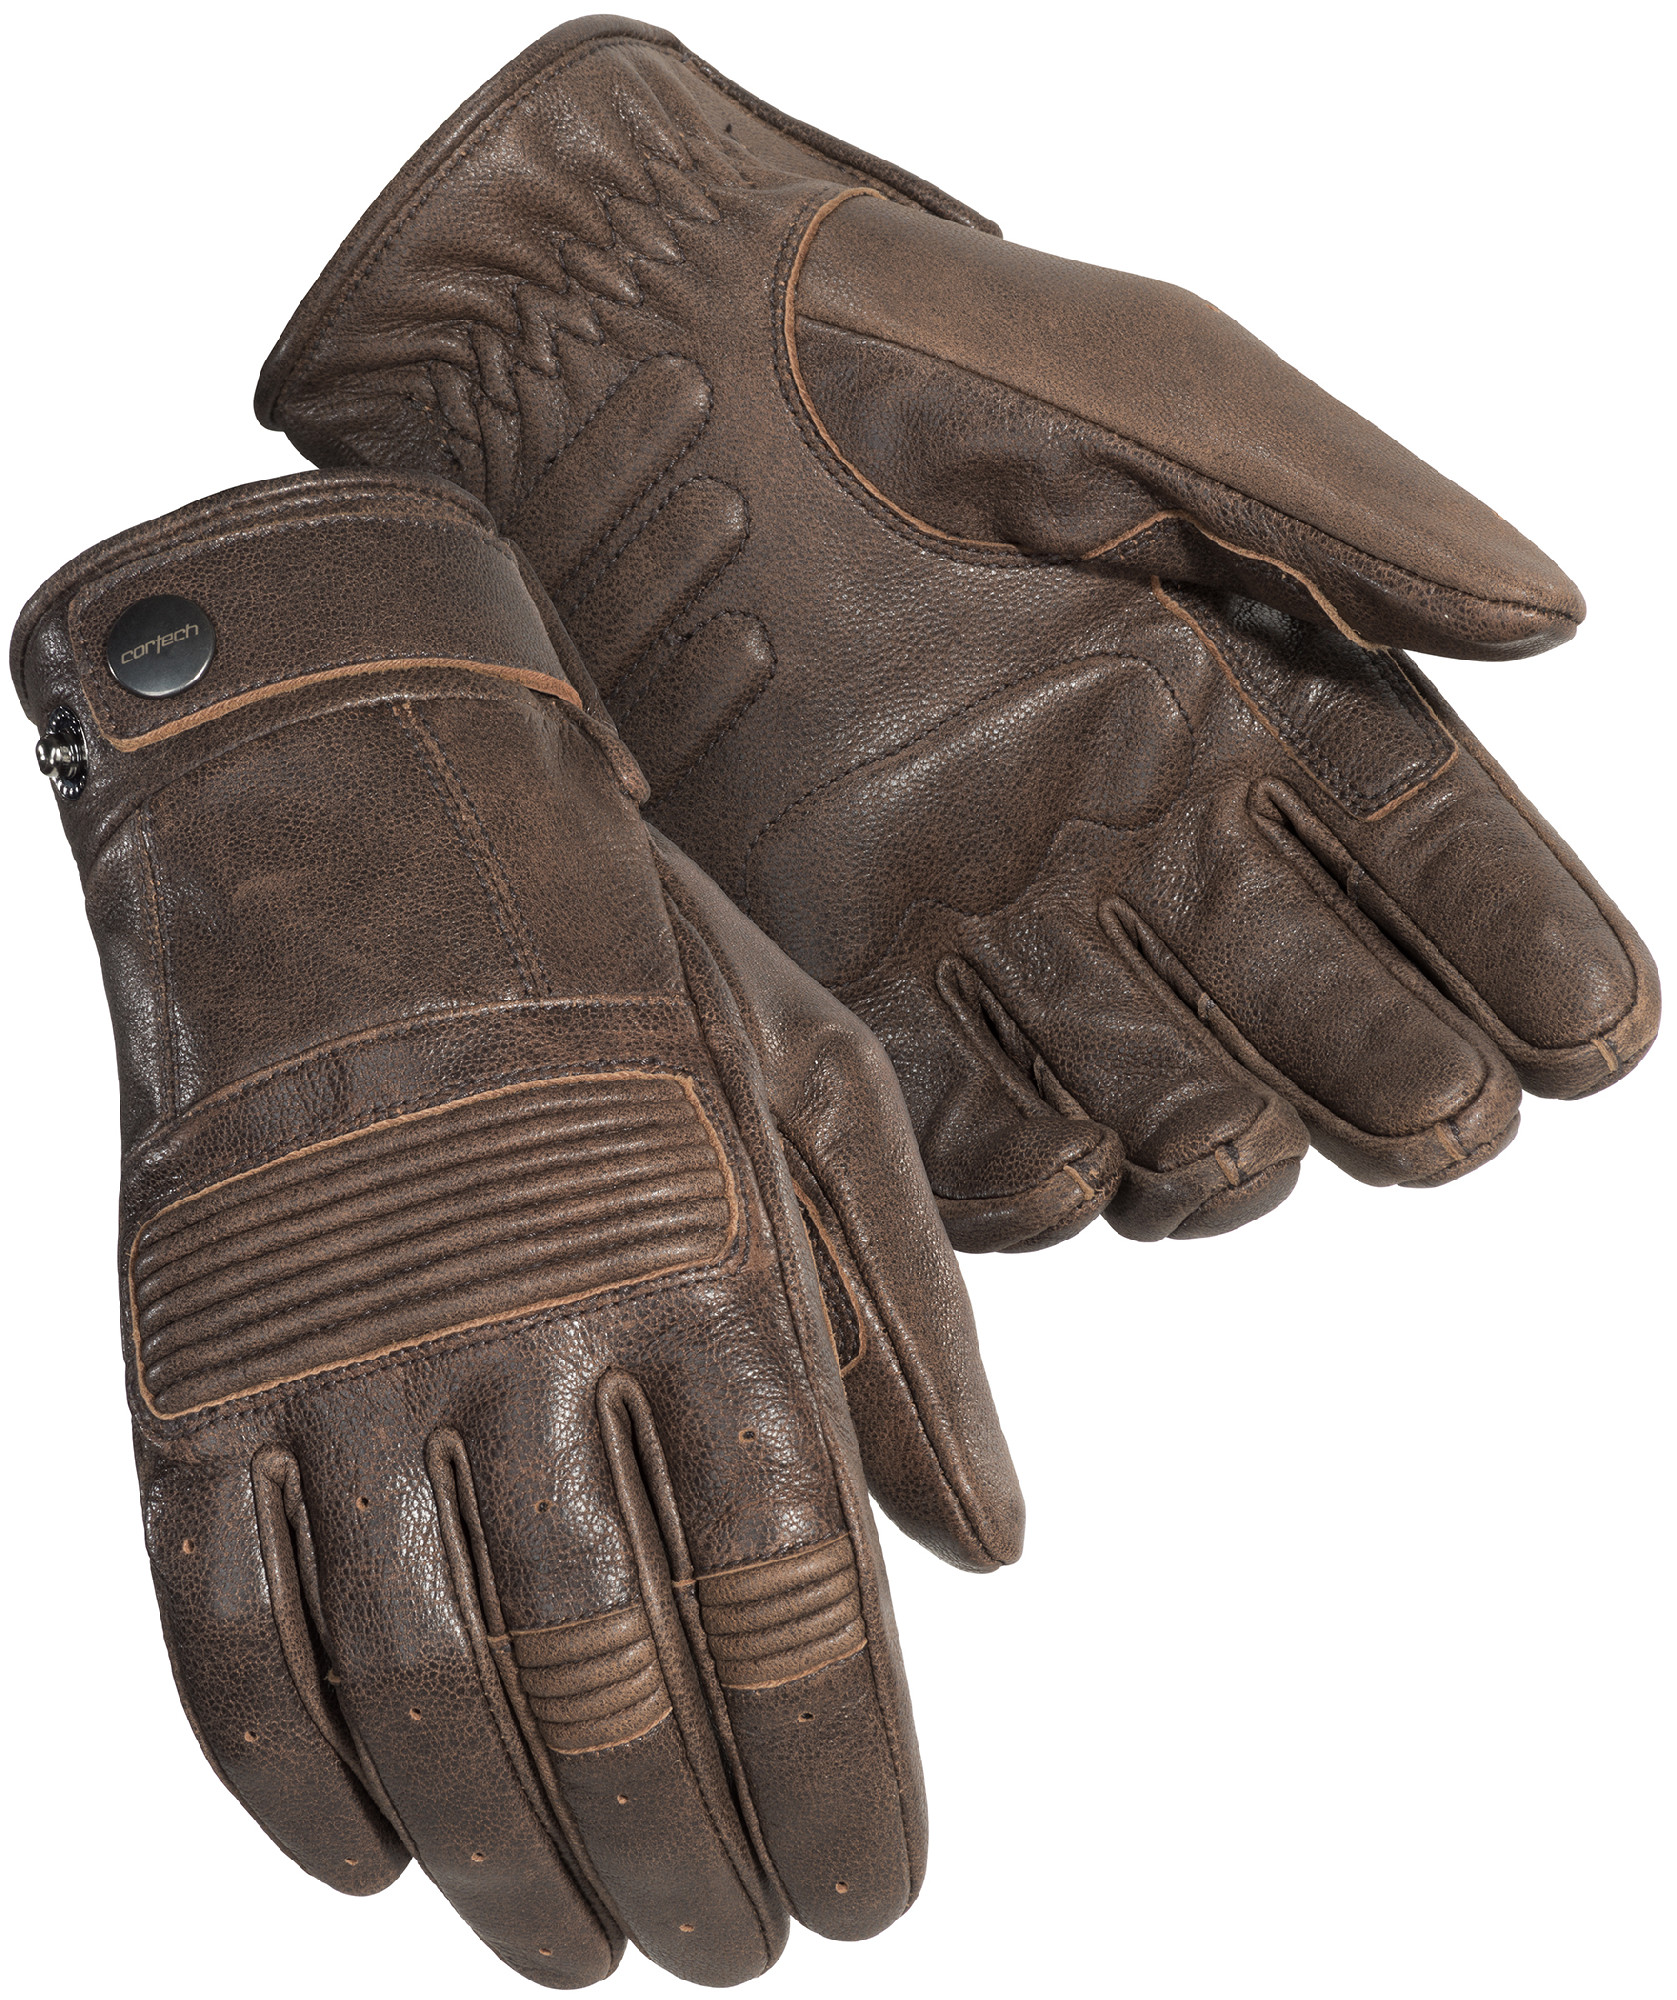 Shop Wilsons Leather for men's leather gloves and more. Get high quality men's leather gloves at exceptional values.